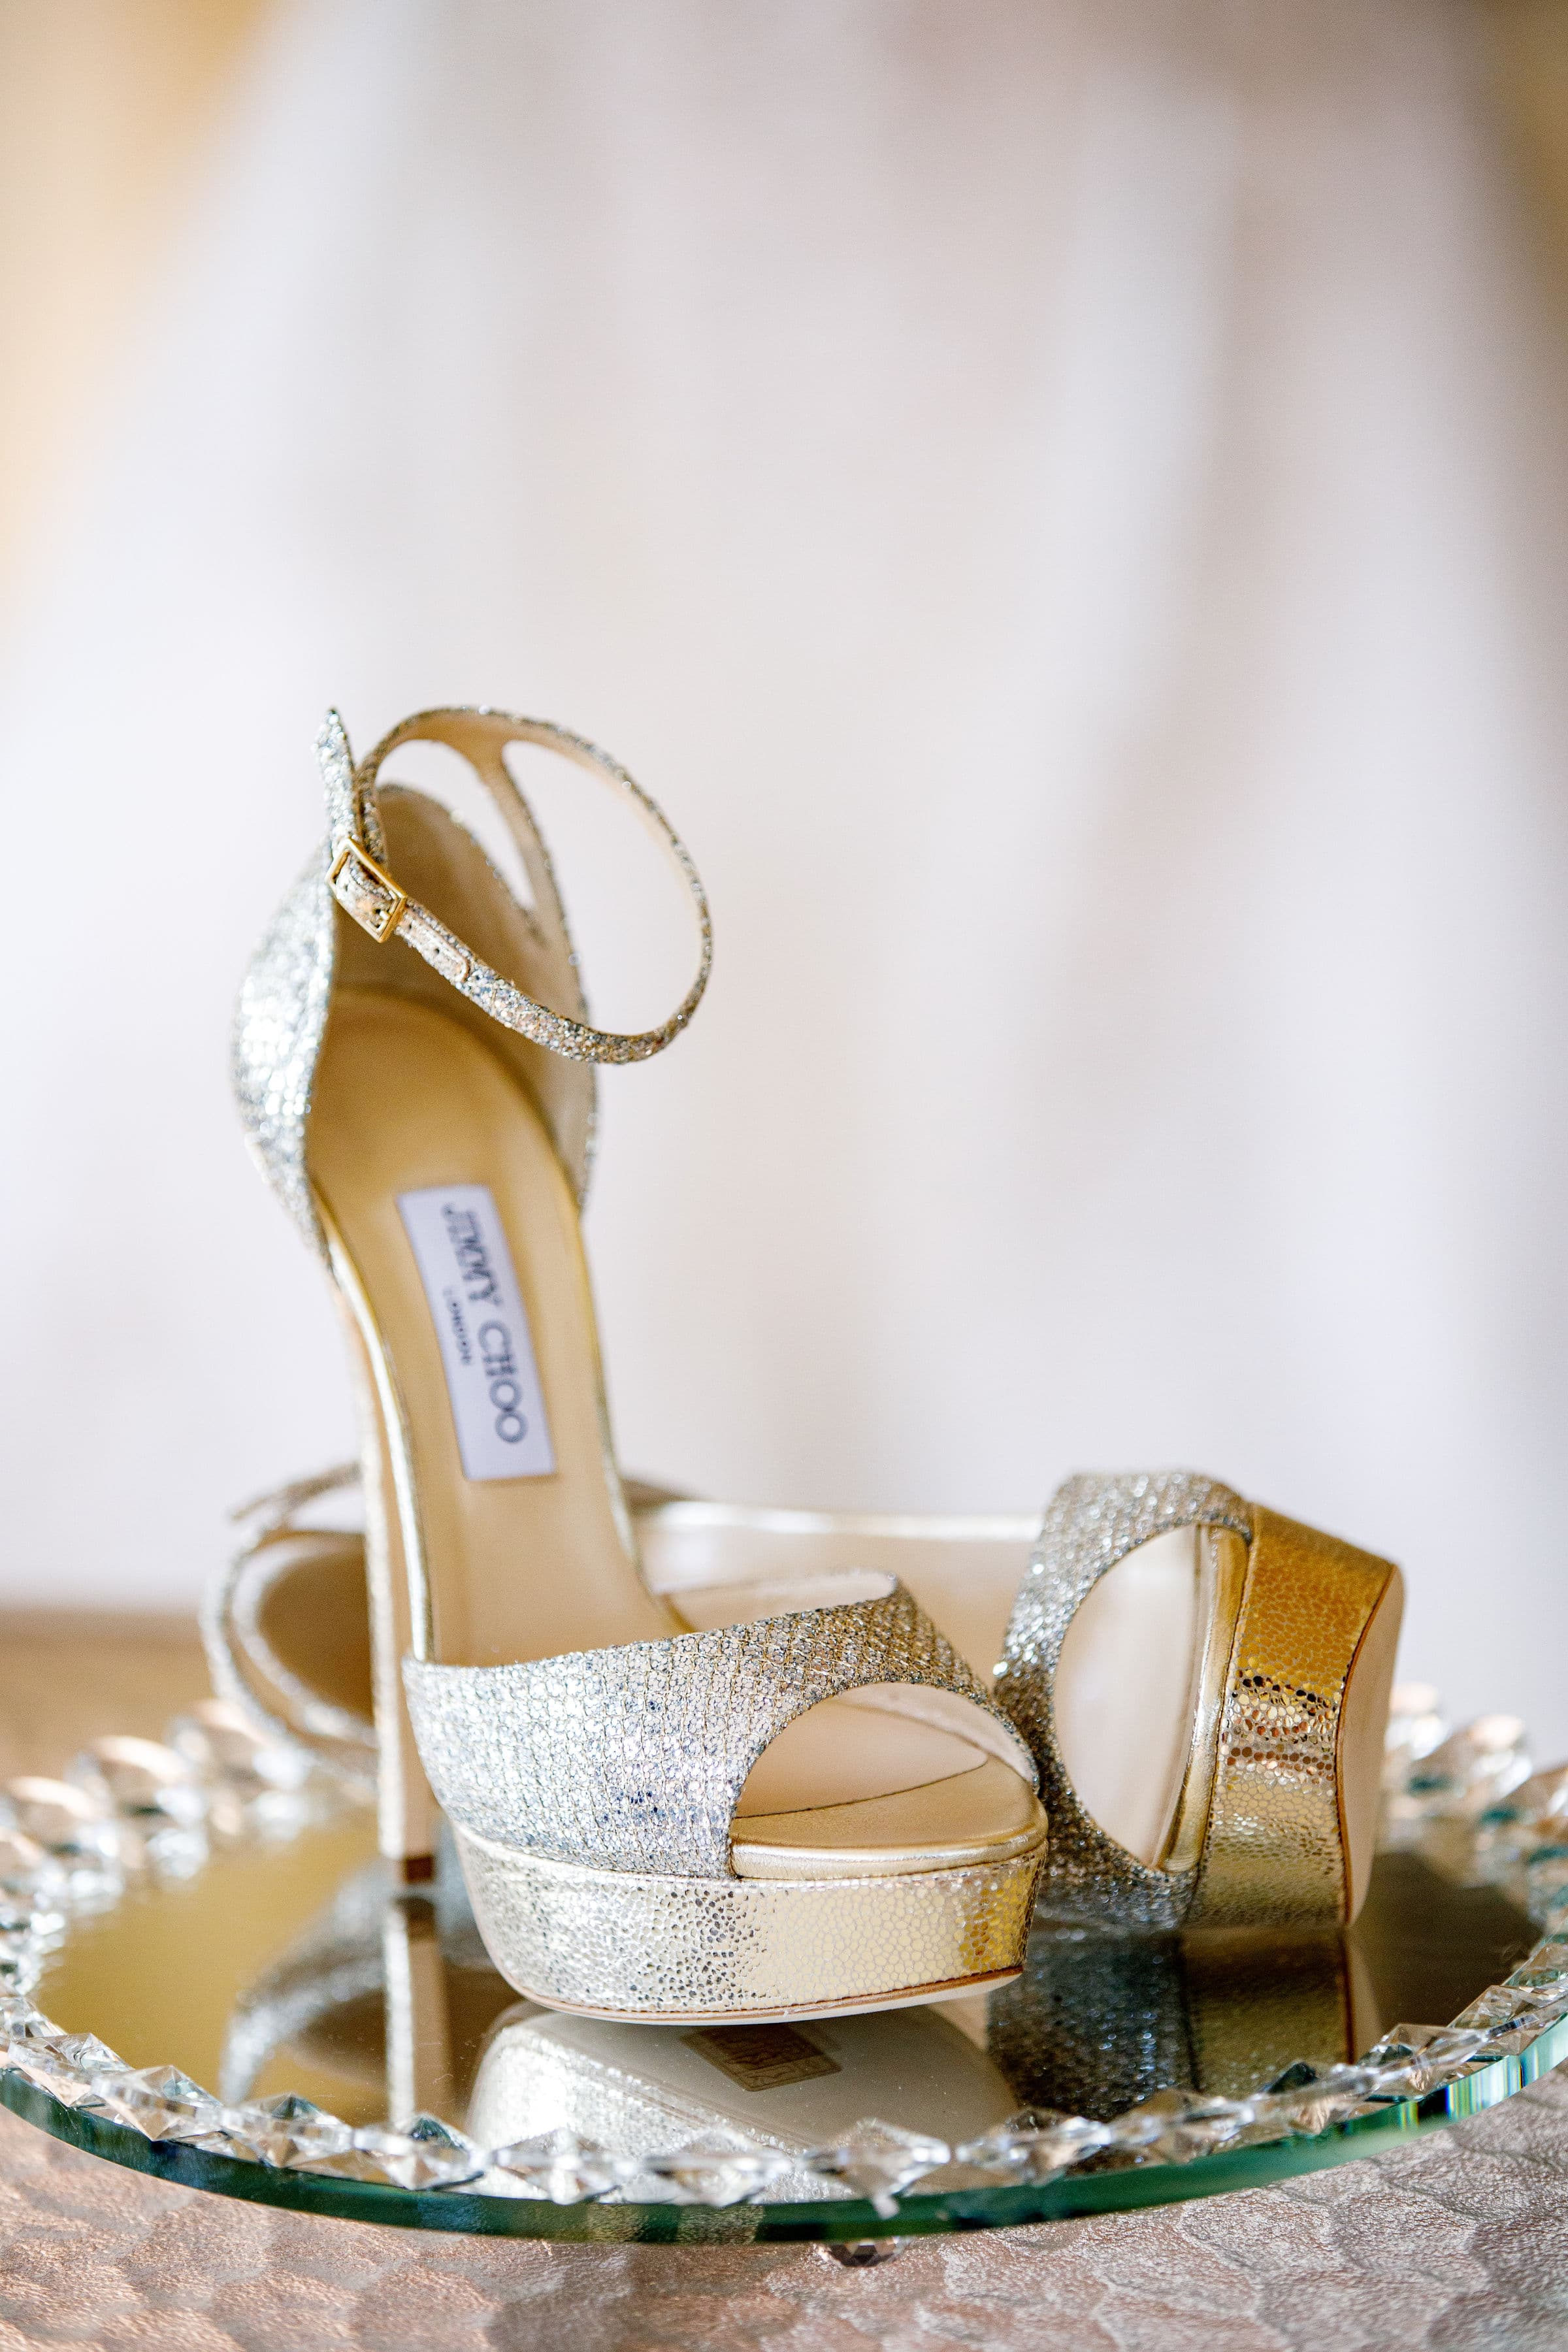 Gold Jimmy Choo Pumps on a Mirrored Tray